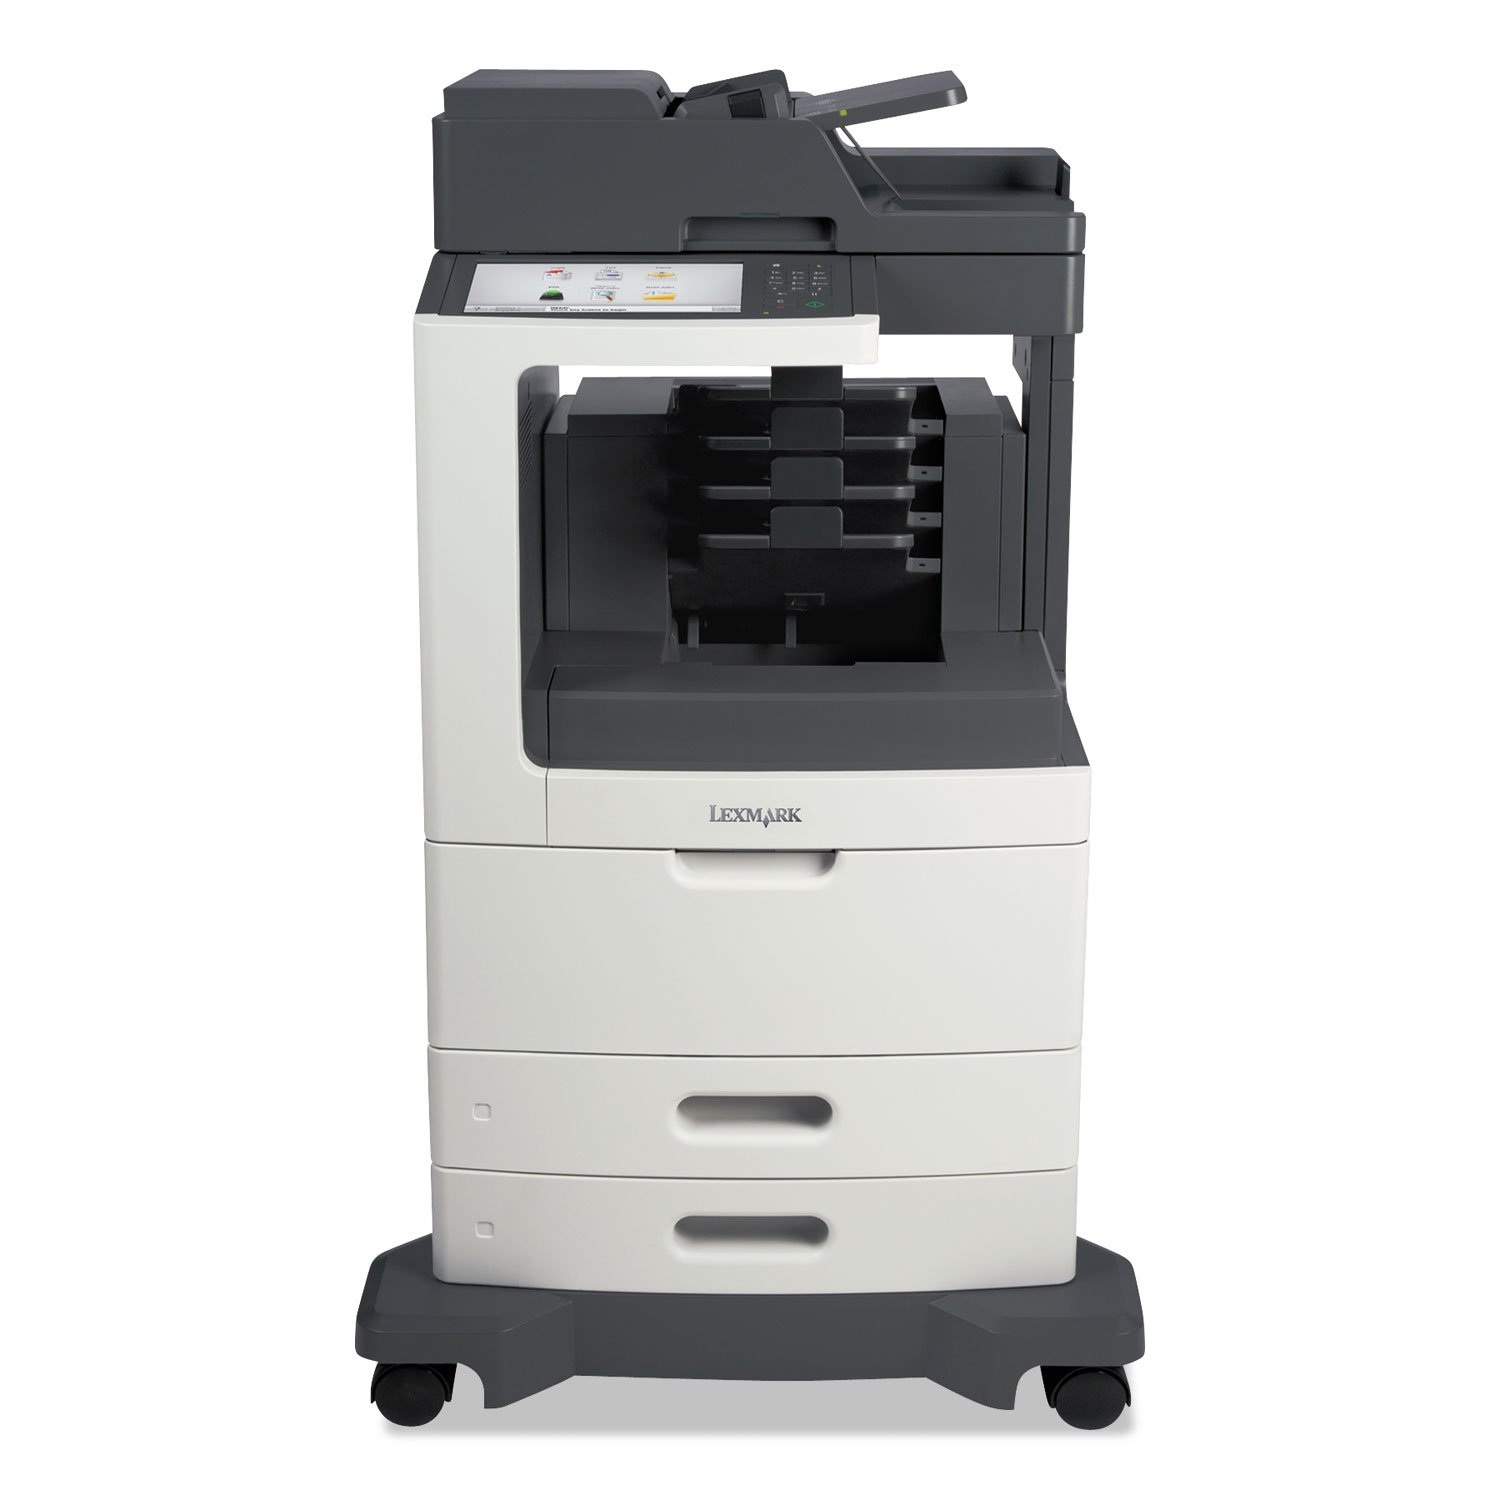 MX812dme Multifunction Laser Printer, Copy/Fax/Print/Scan